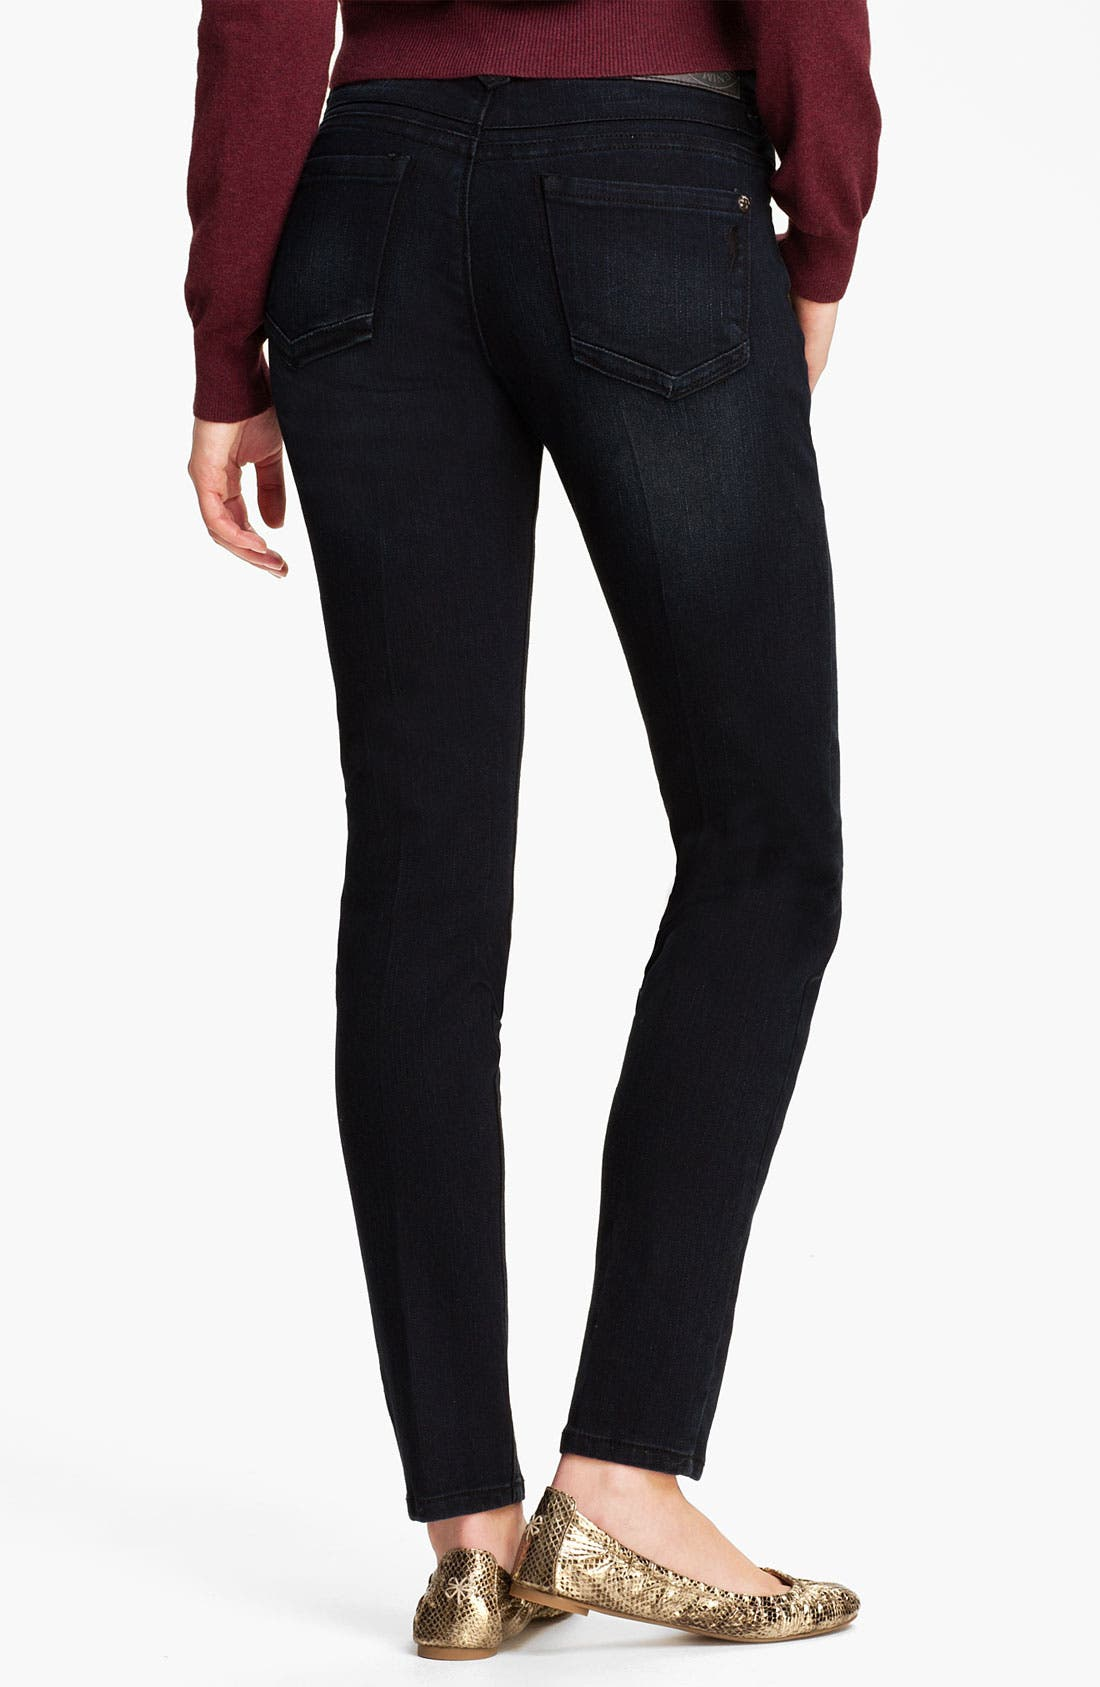 Main Image - Jolt Skinny Stretch Jeans (Juniors)